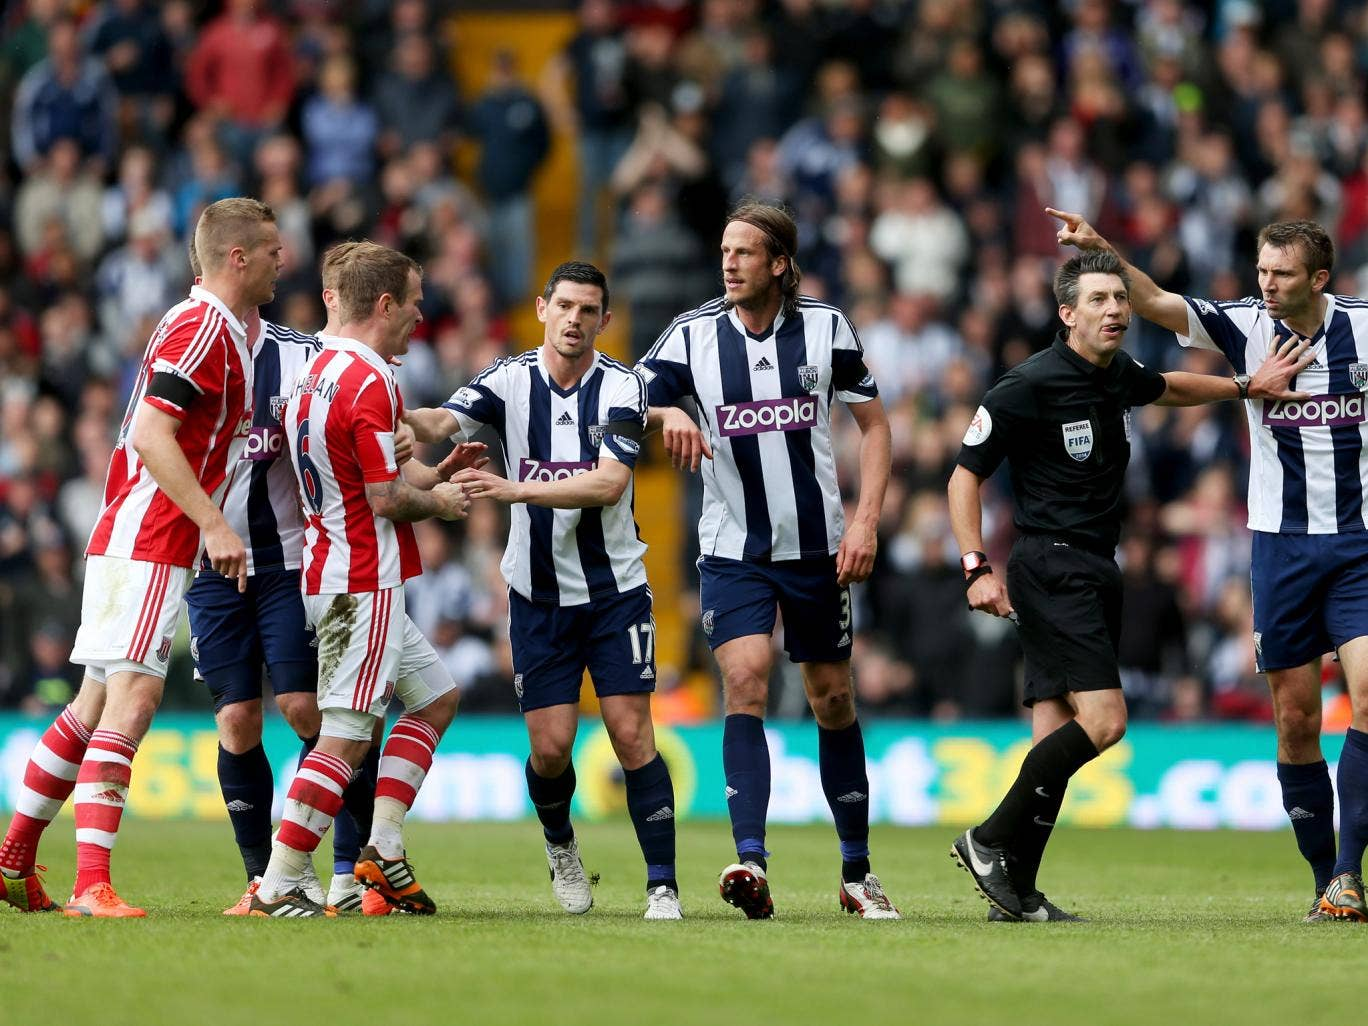 Stoke and West Brom players clash